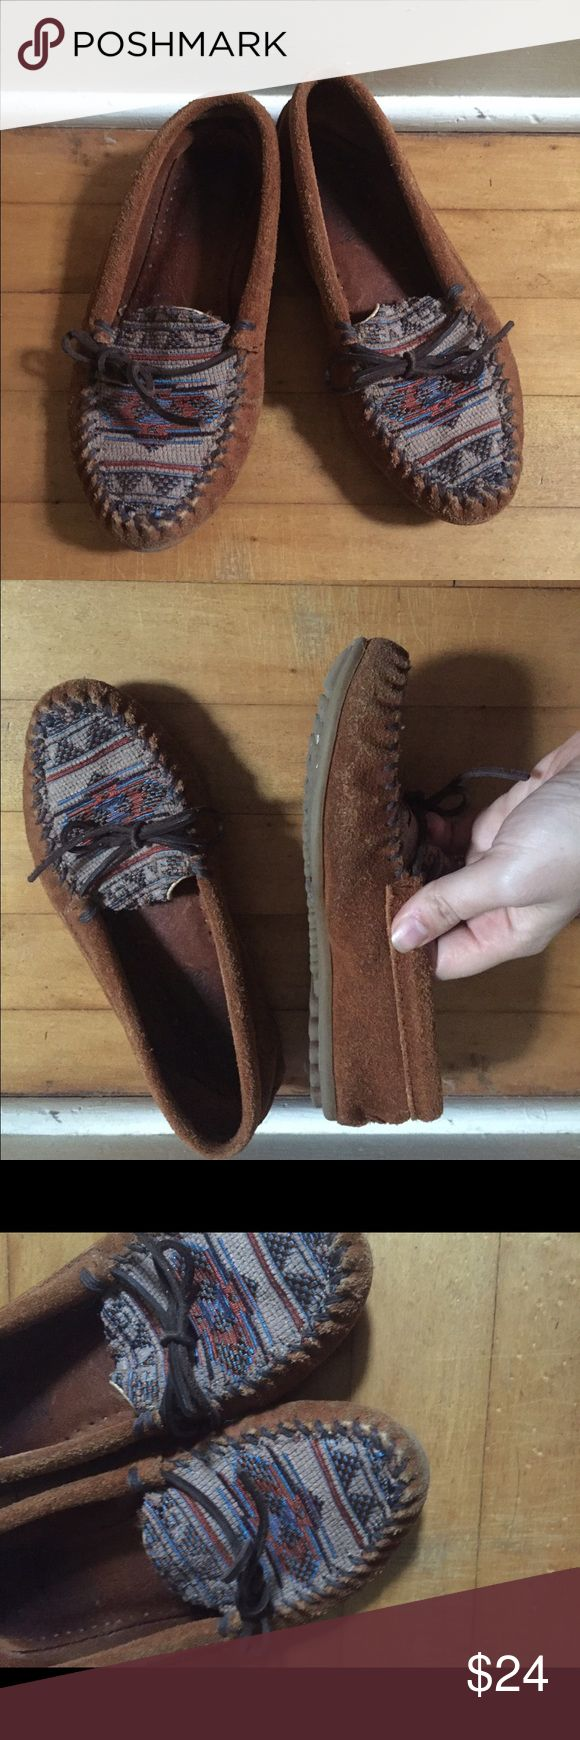 Tribal Print Minnetonka Moccasins Moccasins are so cozy and comfy, and these Tribal print ones are on trend! They are a size 7, and have been worn, but don't have any major damage. #mocs #minnetonka #tribalprint #tribal #shoefie #trend #moccasins Minnetonka Shoes Moccasins